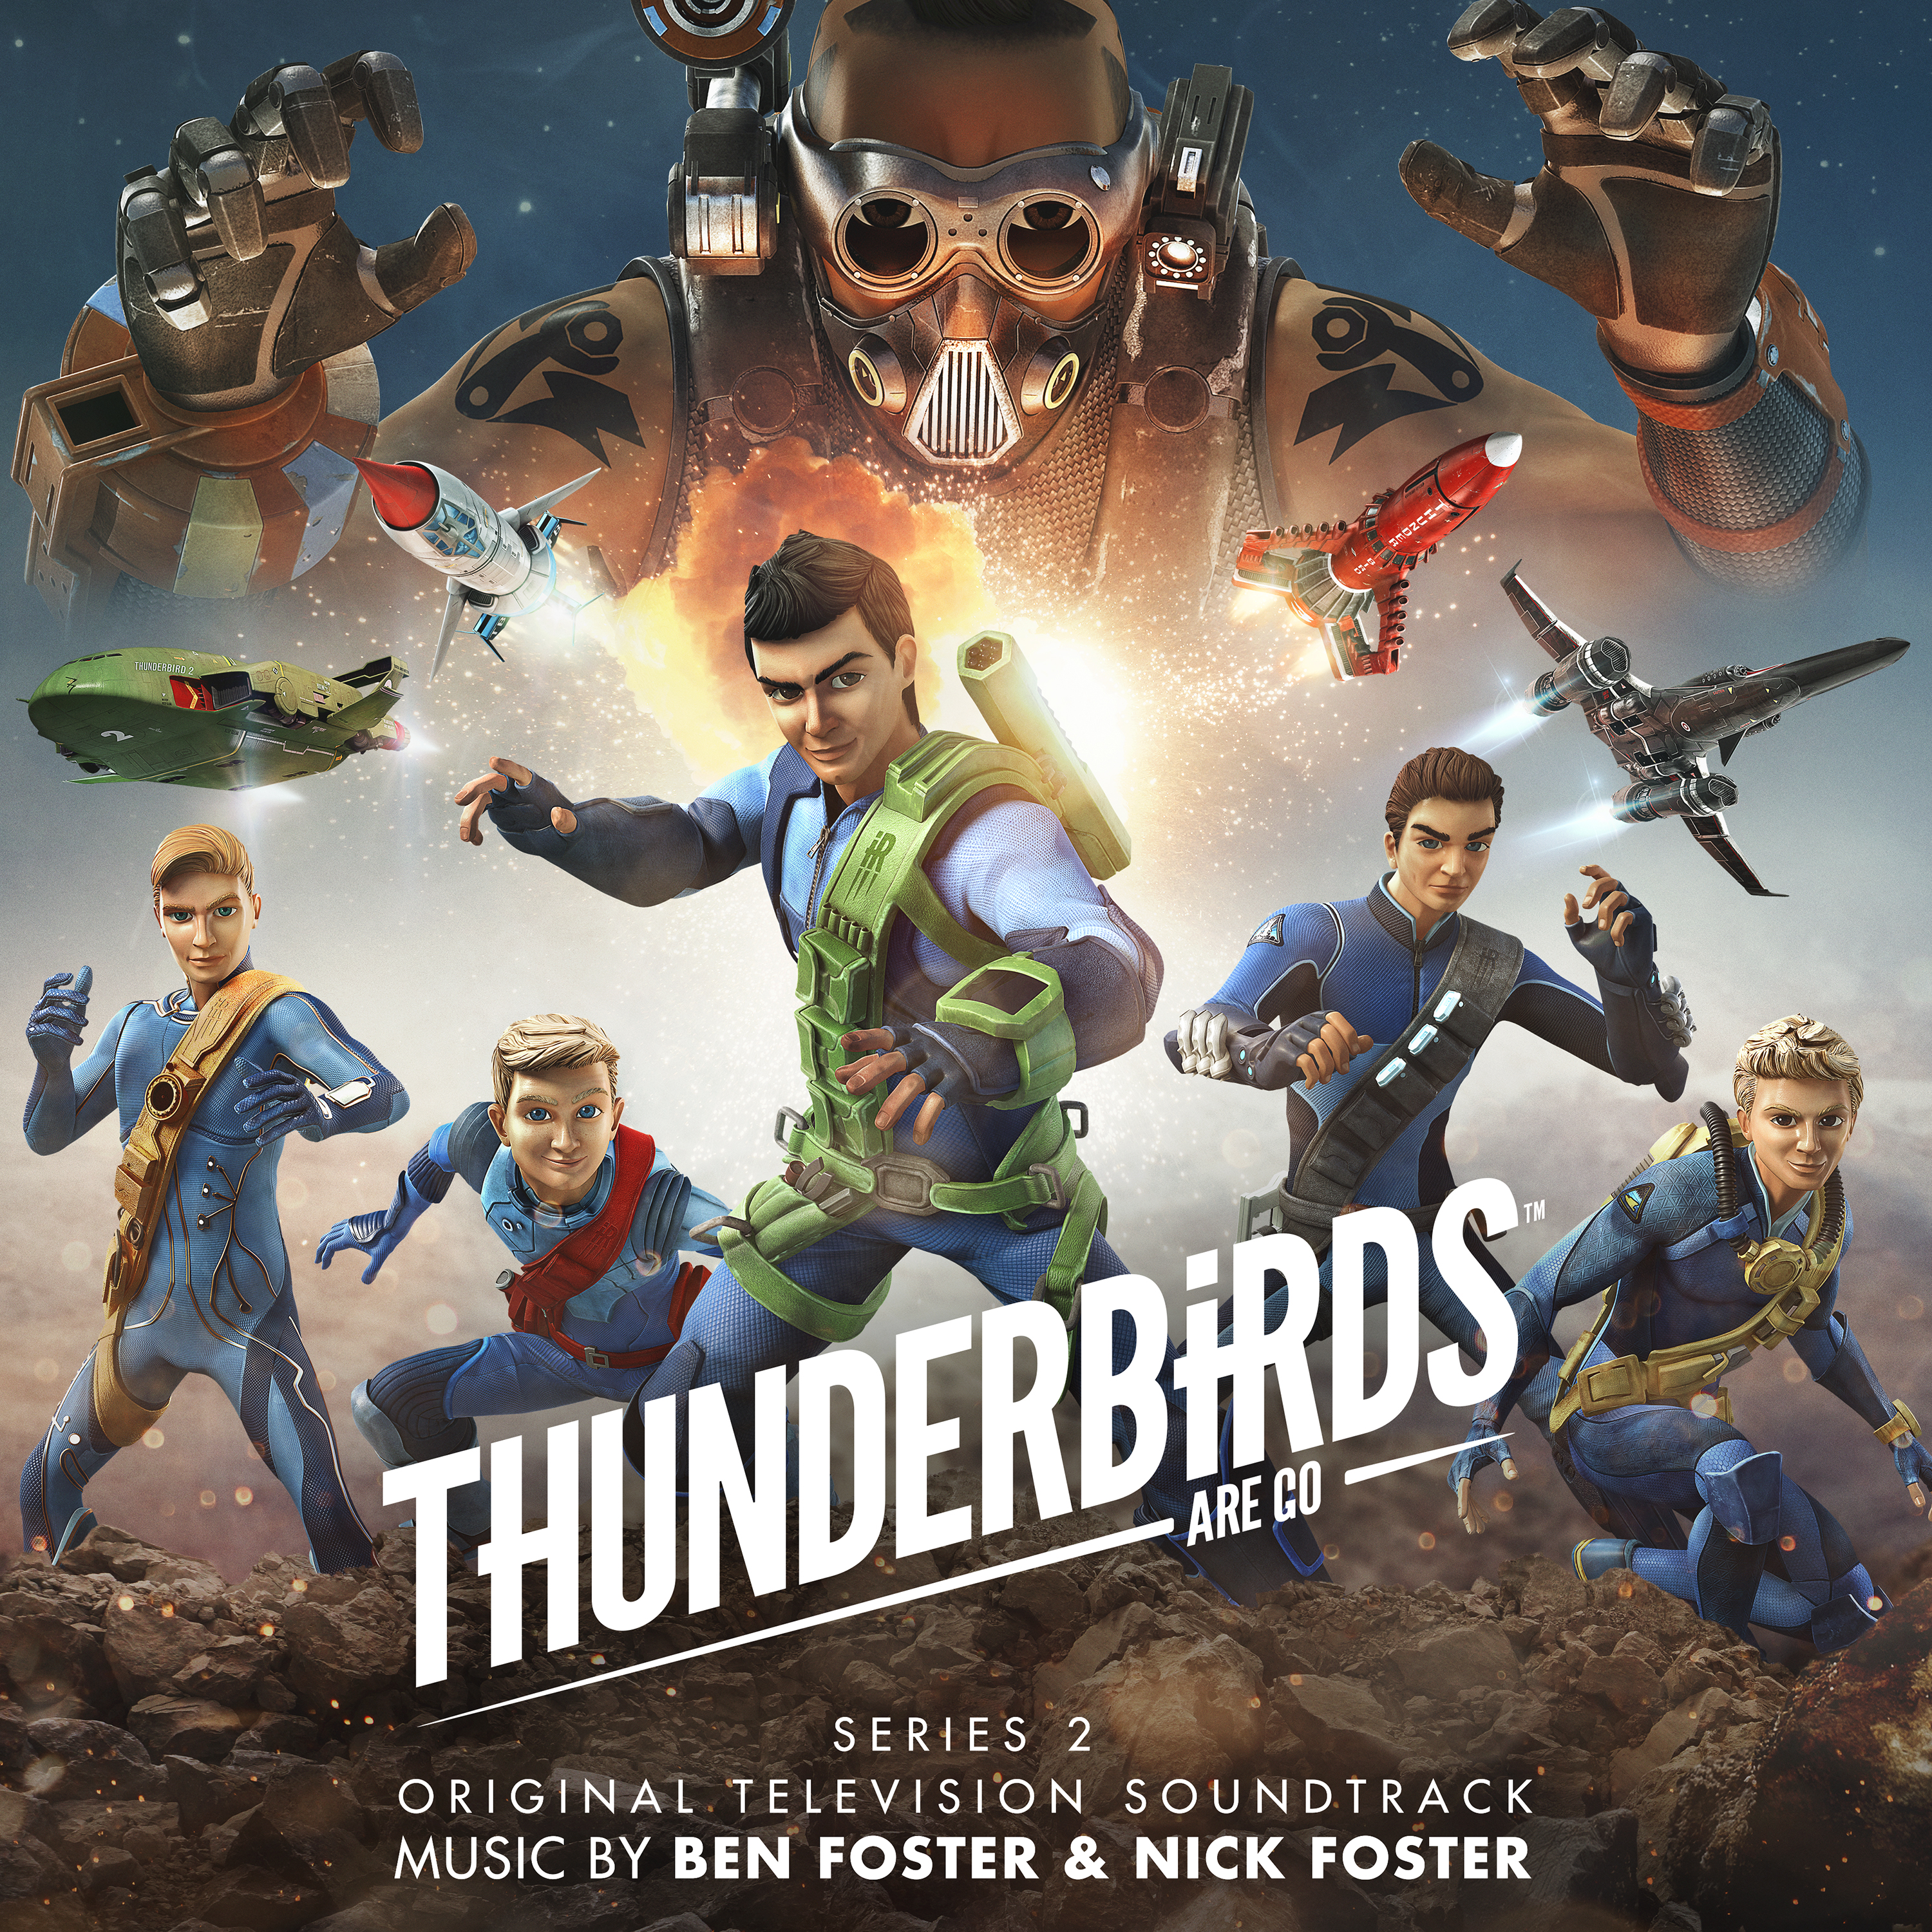 Thunderbirds Are Go Series 2 (Original Television Soundtrack)